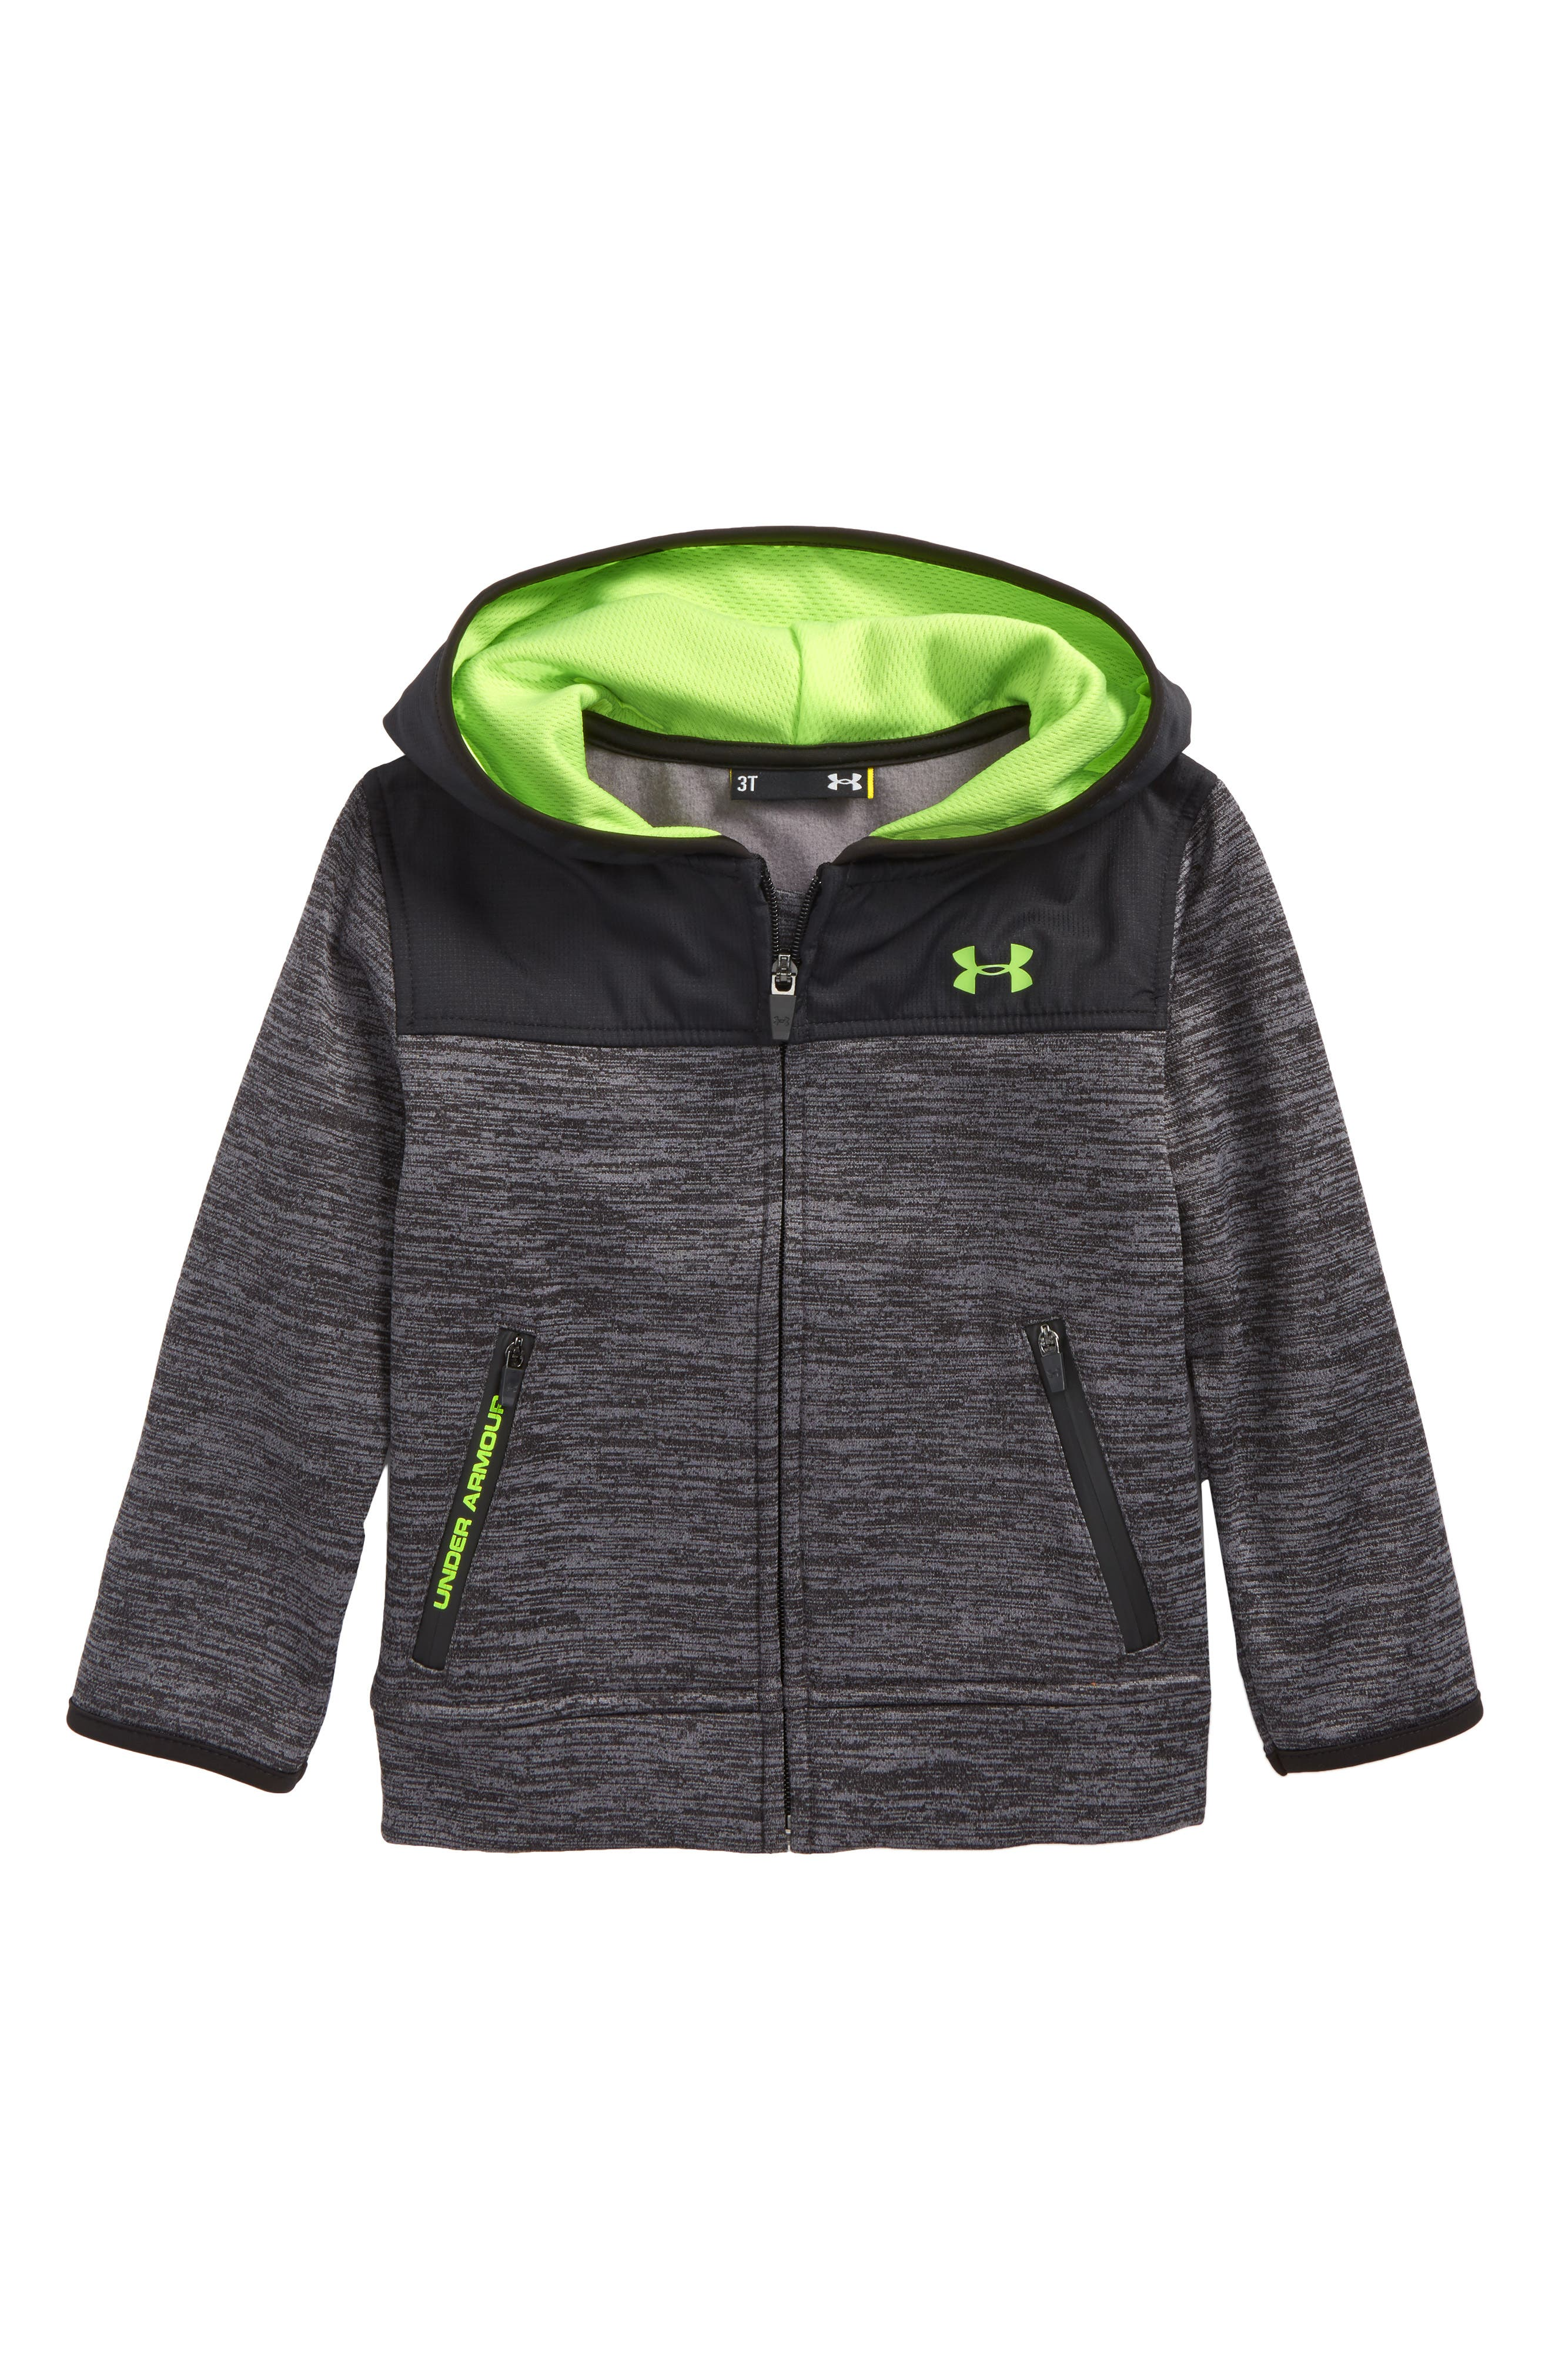 Altitude Hoodie,                             Main thumbnail 1, color,                             Carbon Heather